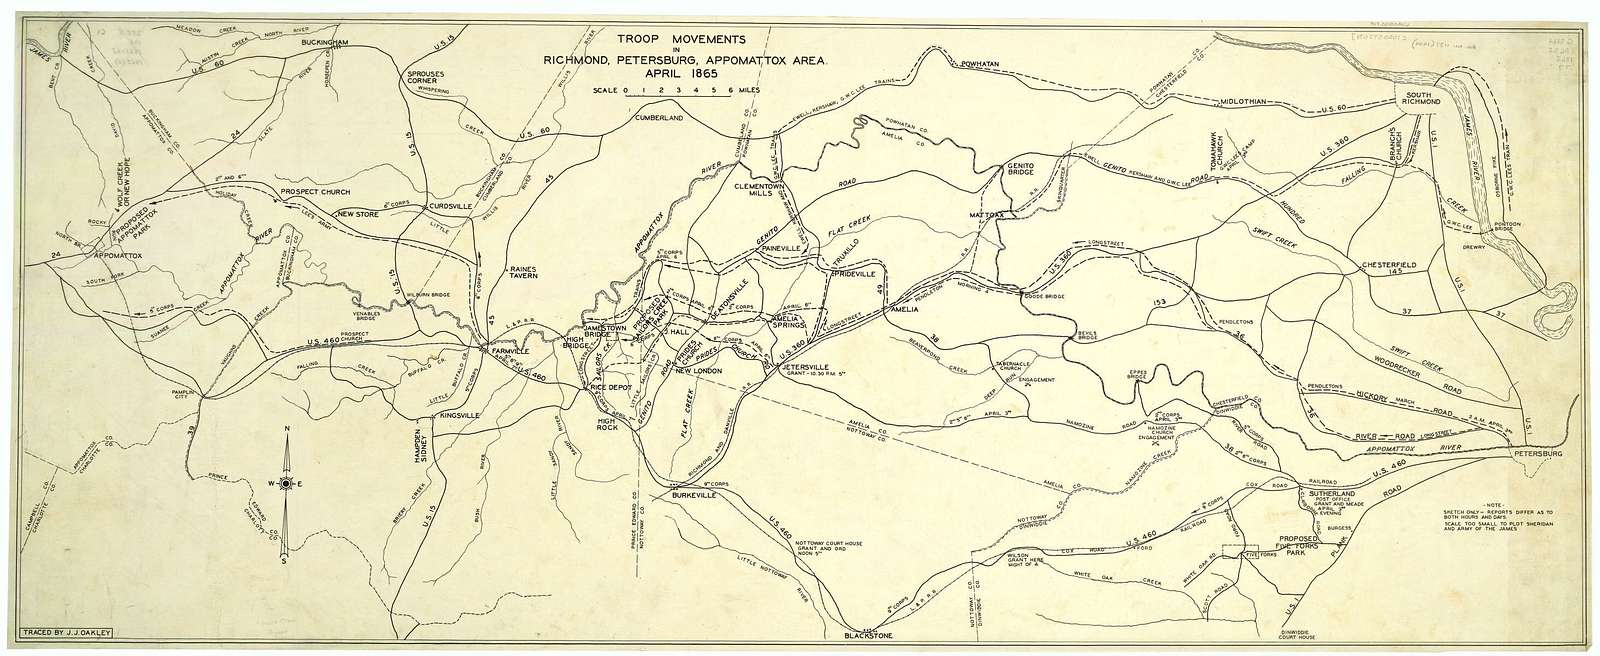 Troop movements in Richmond, Petersburg, Appomattox area, April 1865